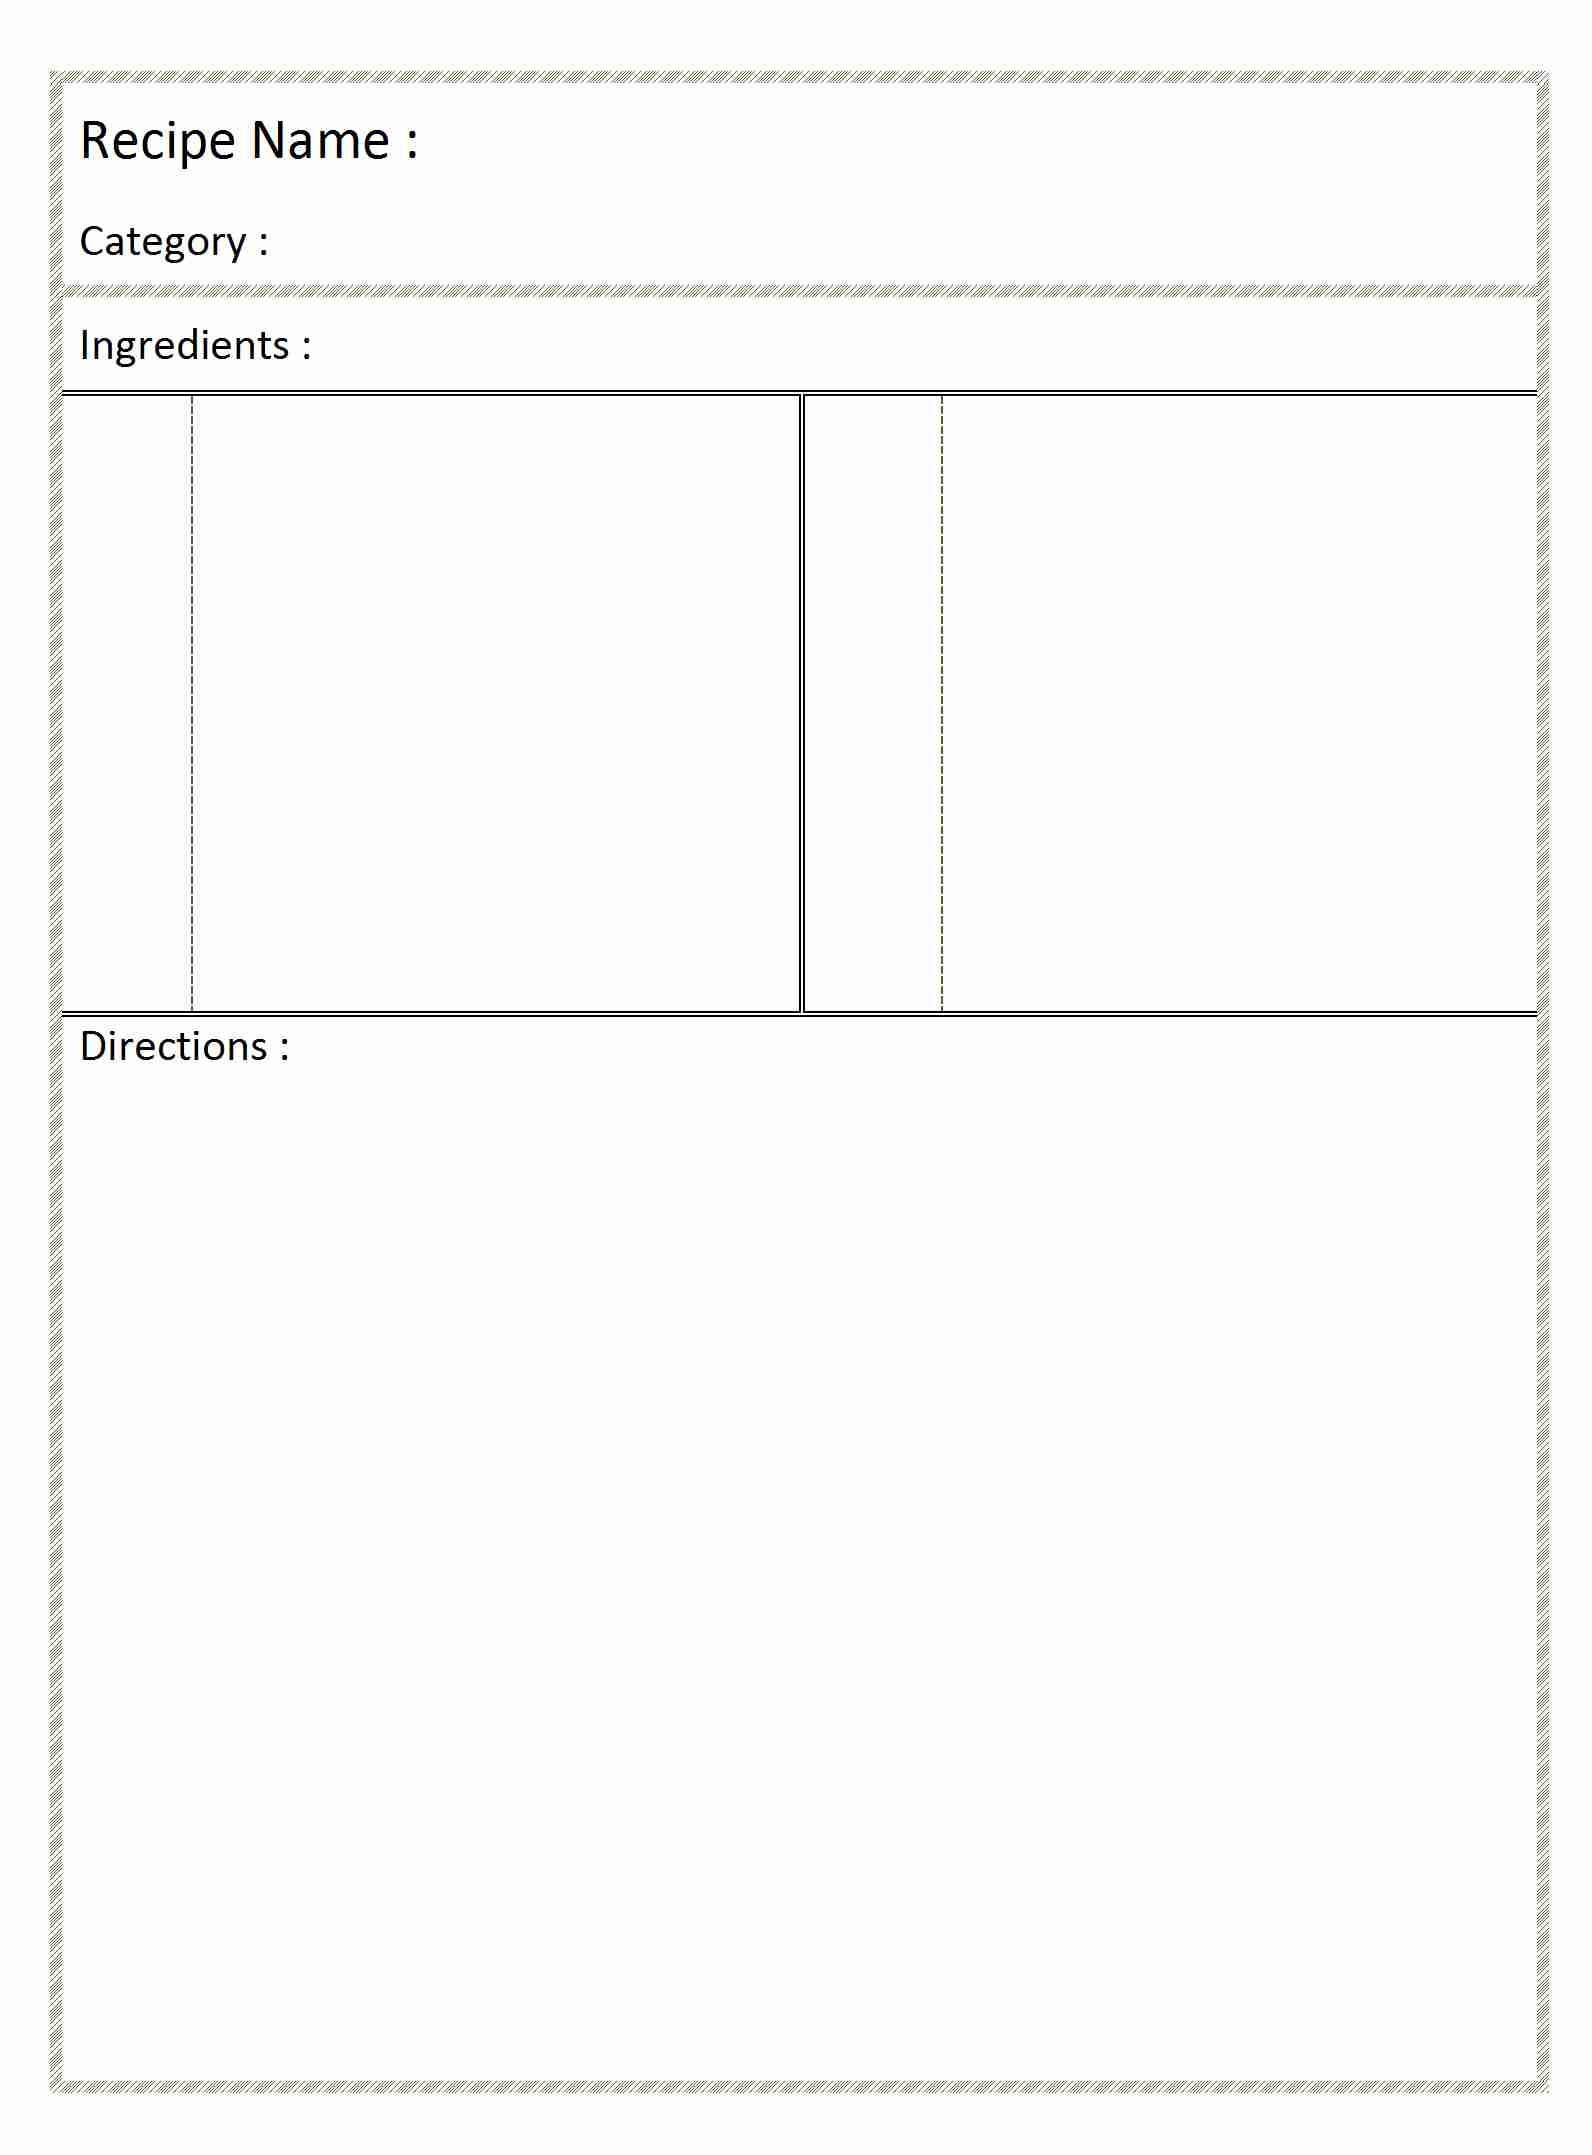 template for recipes in word - 1000 images about recipe on pinterest printable recipe